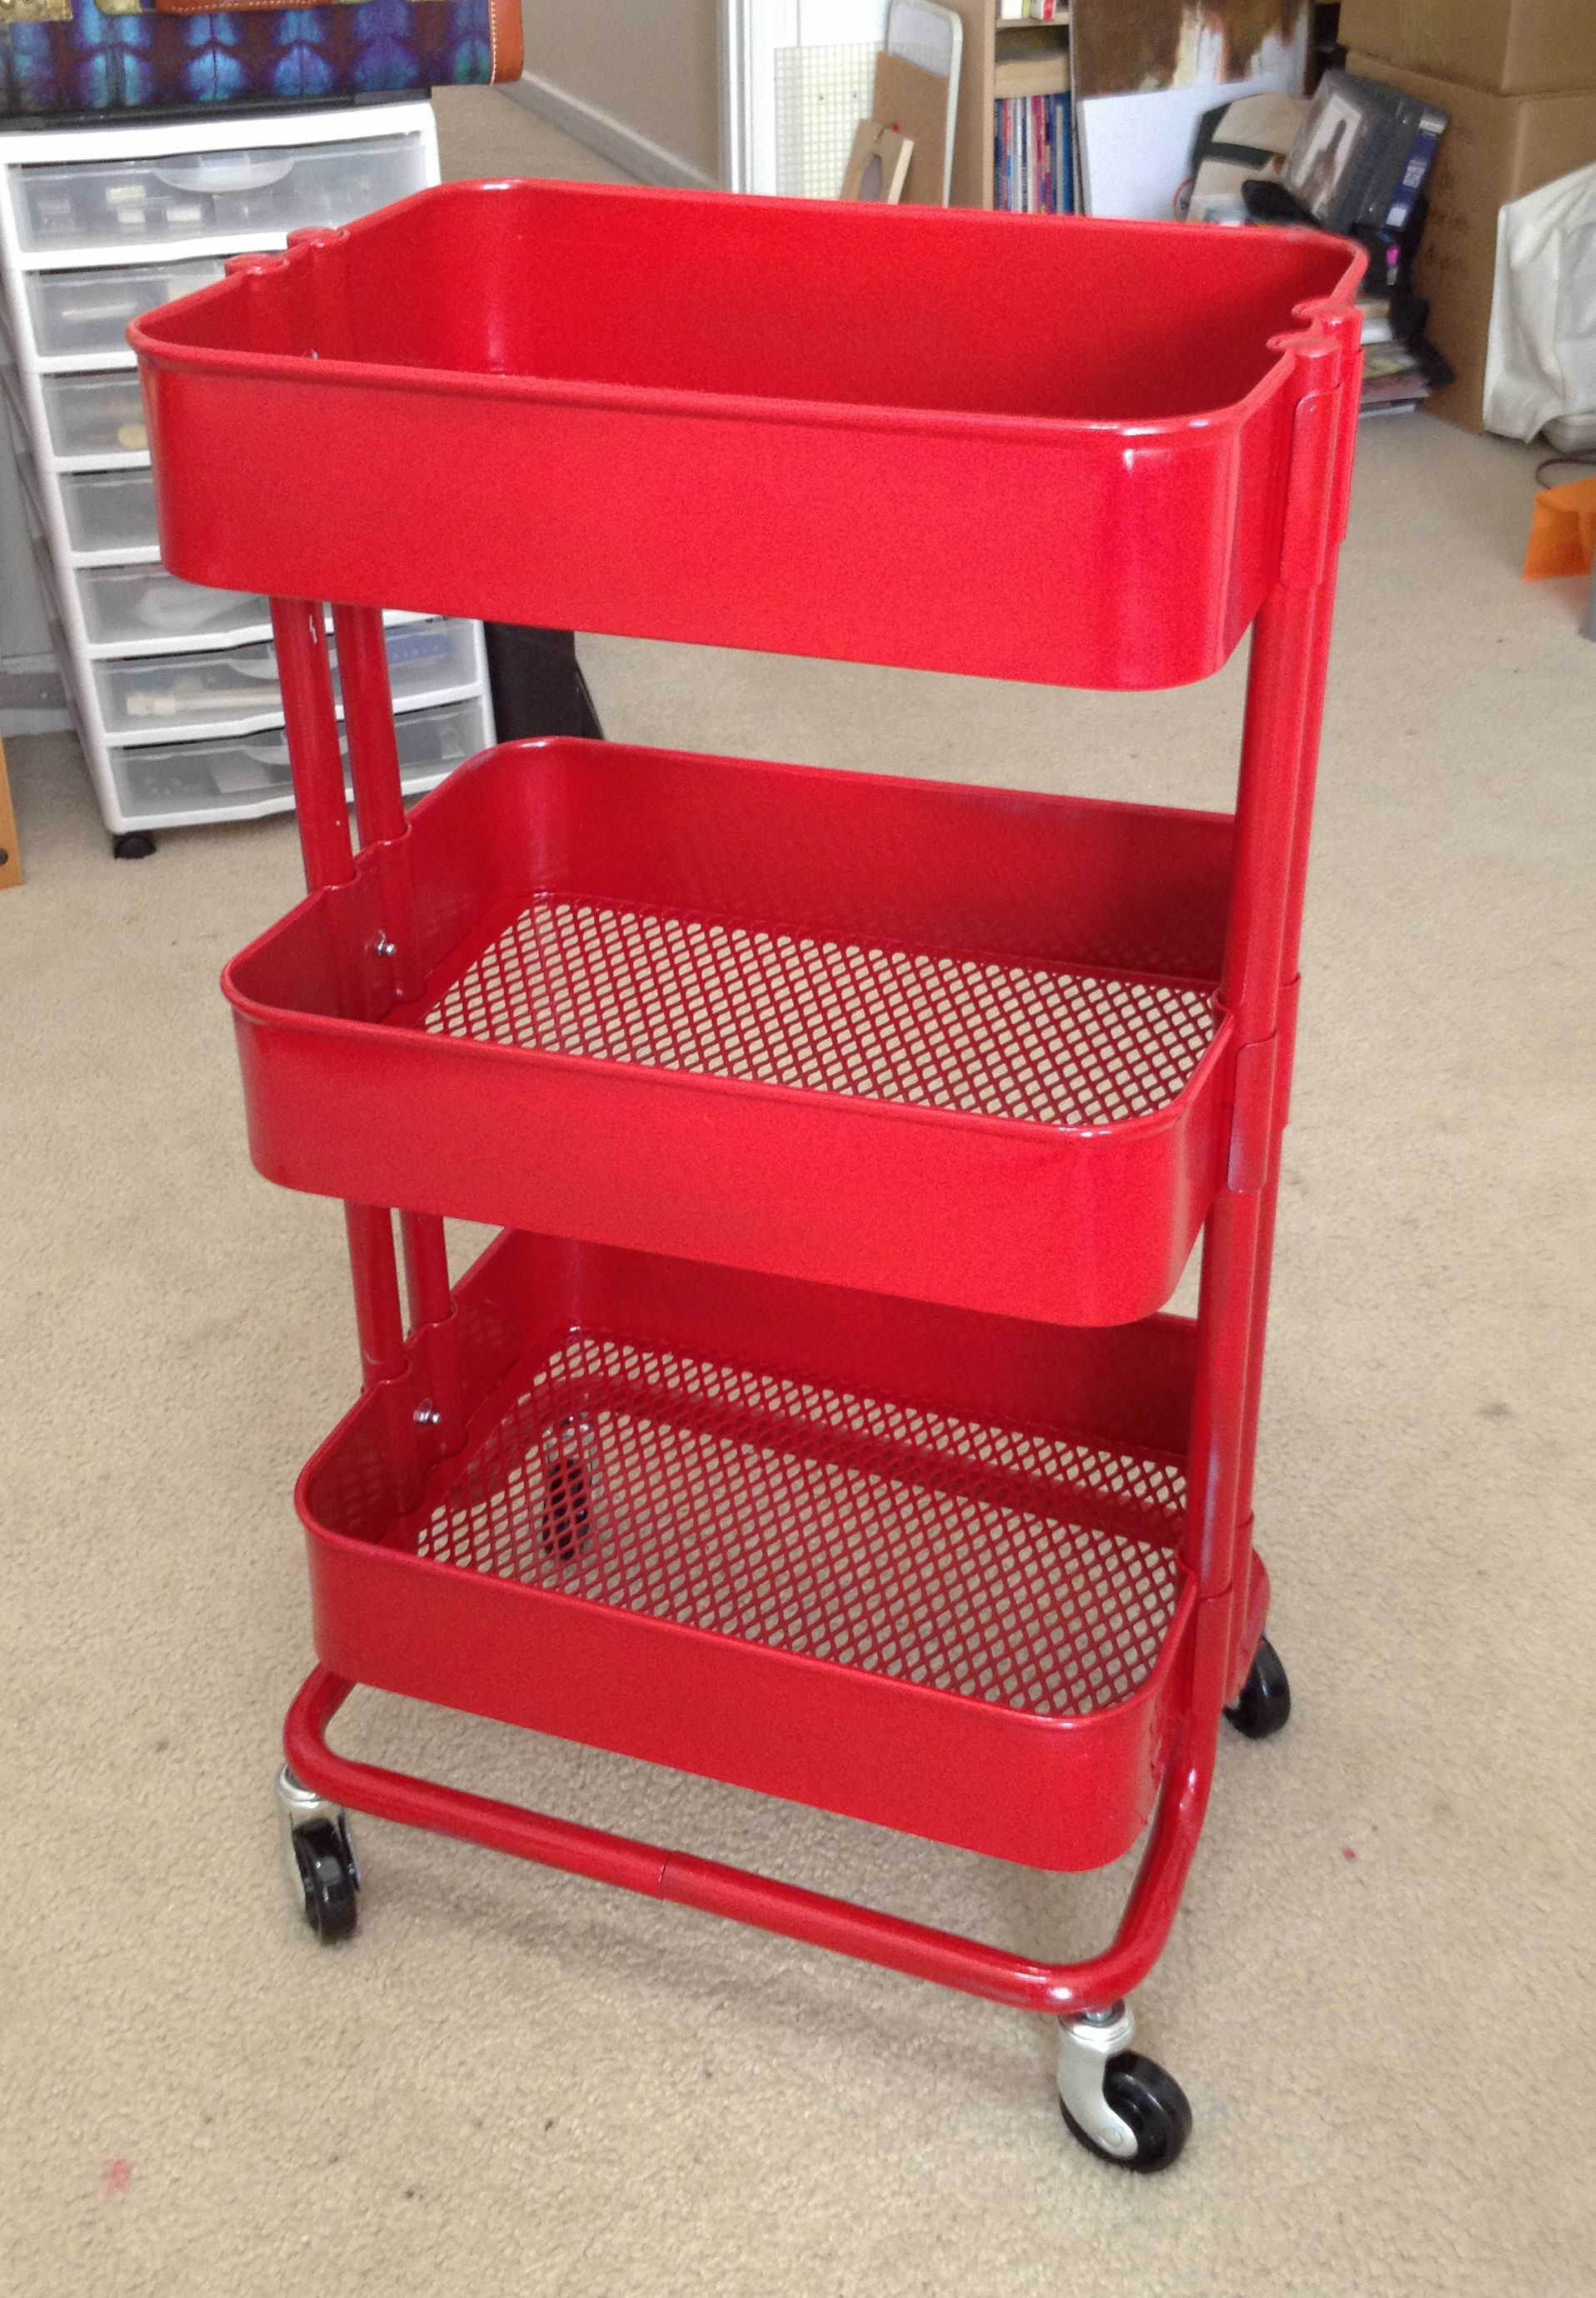 Ikea kitchen cart painted - Find This Pin And More On Craft Room Inspiration Red Spray Painted Raskog Kitchen Cart